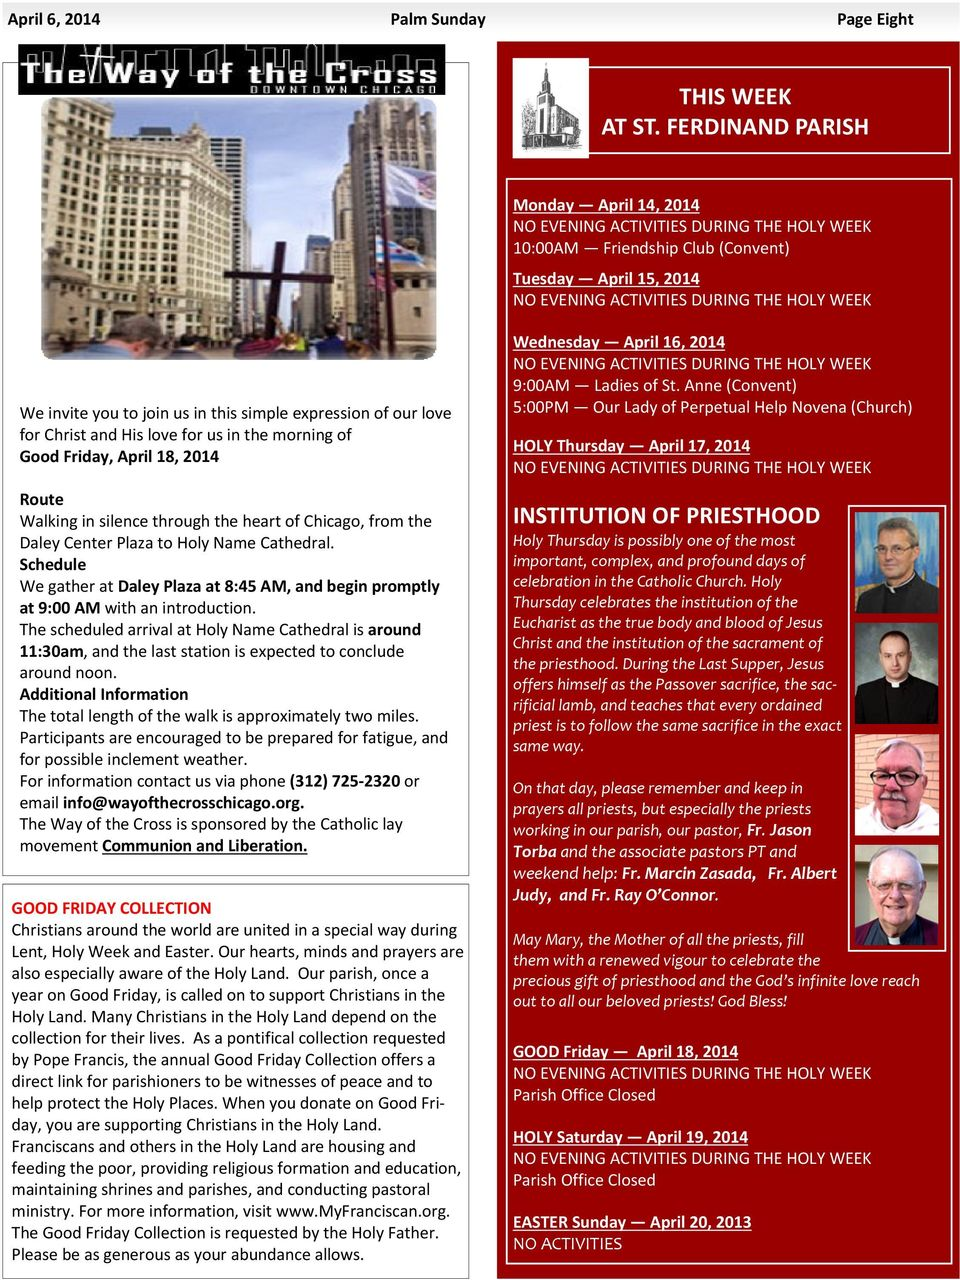 join us in this simple expression of our love for Christ and His love for us in the morning of Good Friday, April 18, 2014 Route Walking in silence through the heart of Chicago, from the Daley Center